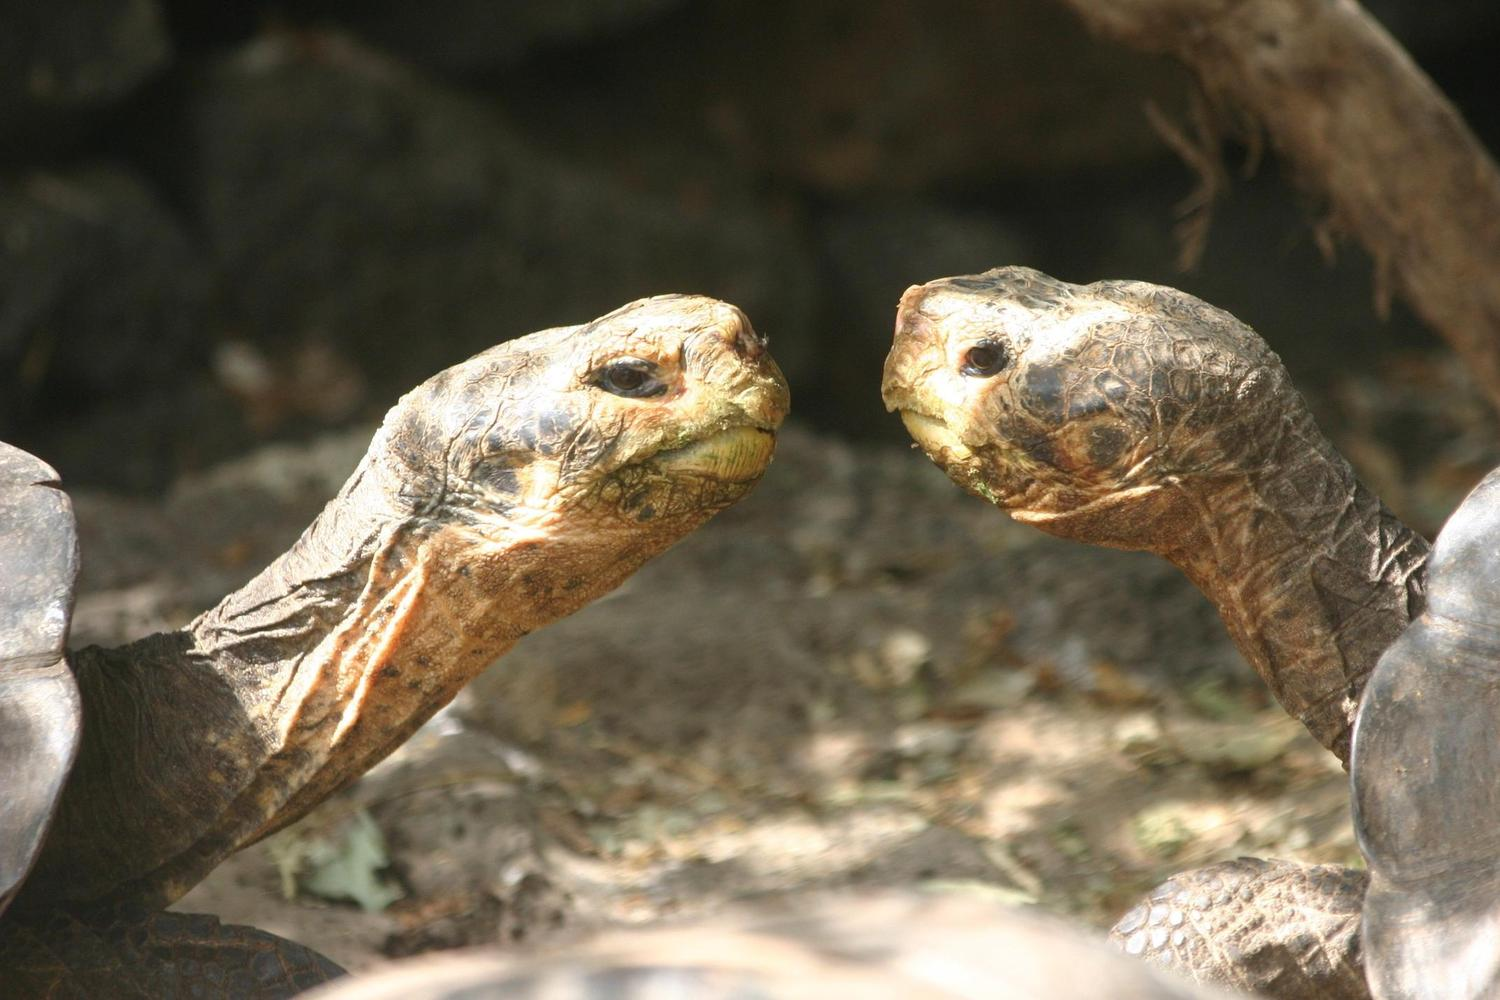 Female giant tortoises at the Darwin Research Centre in the Galapagos